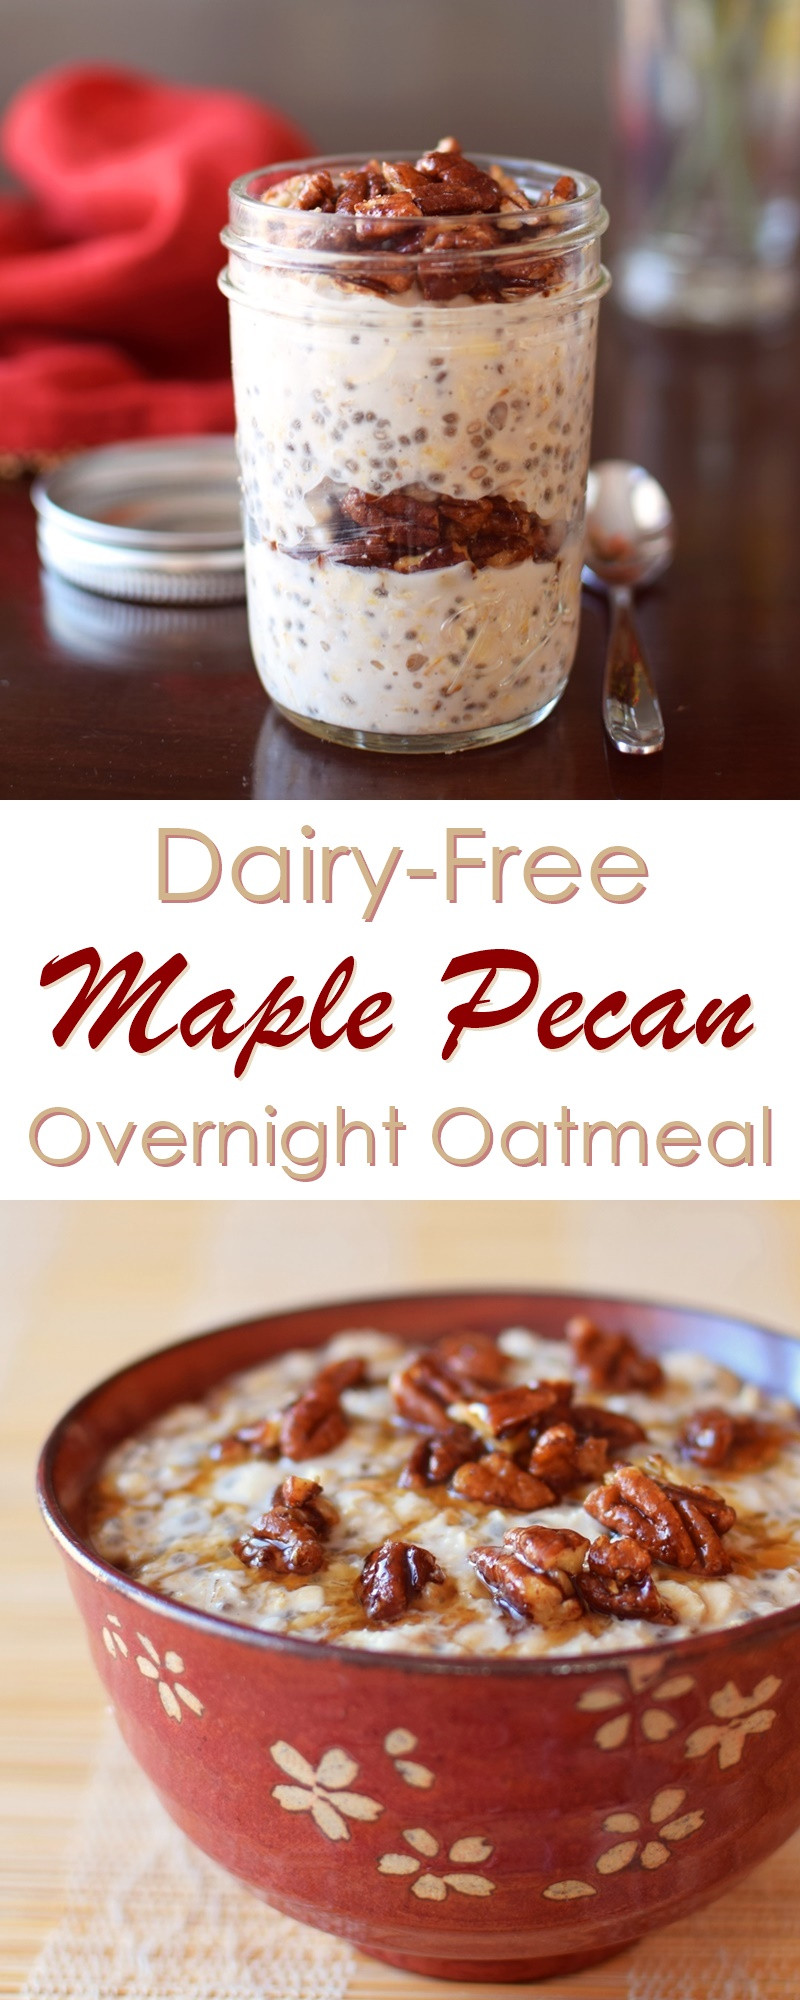 Dairy Free Overnight Oats  Maple Pecan Overnight Oatmeal Recipe Dairy Free